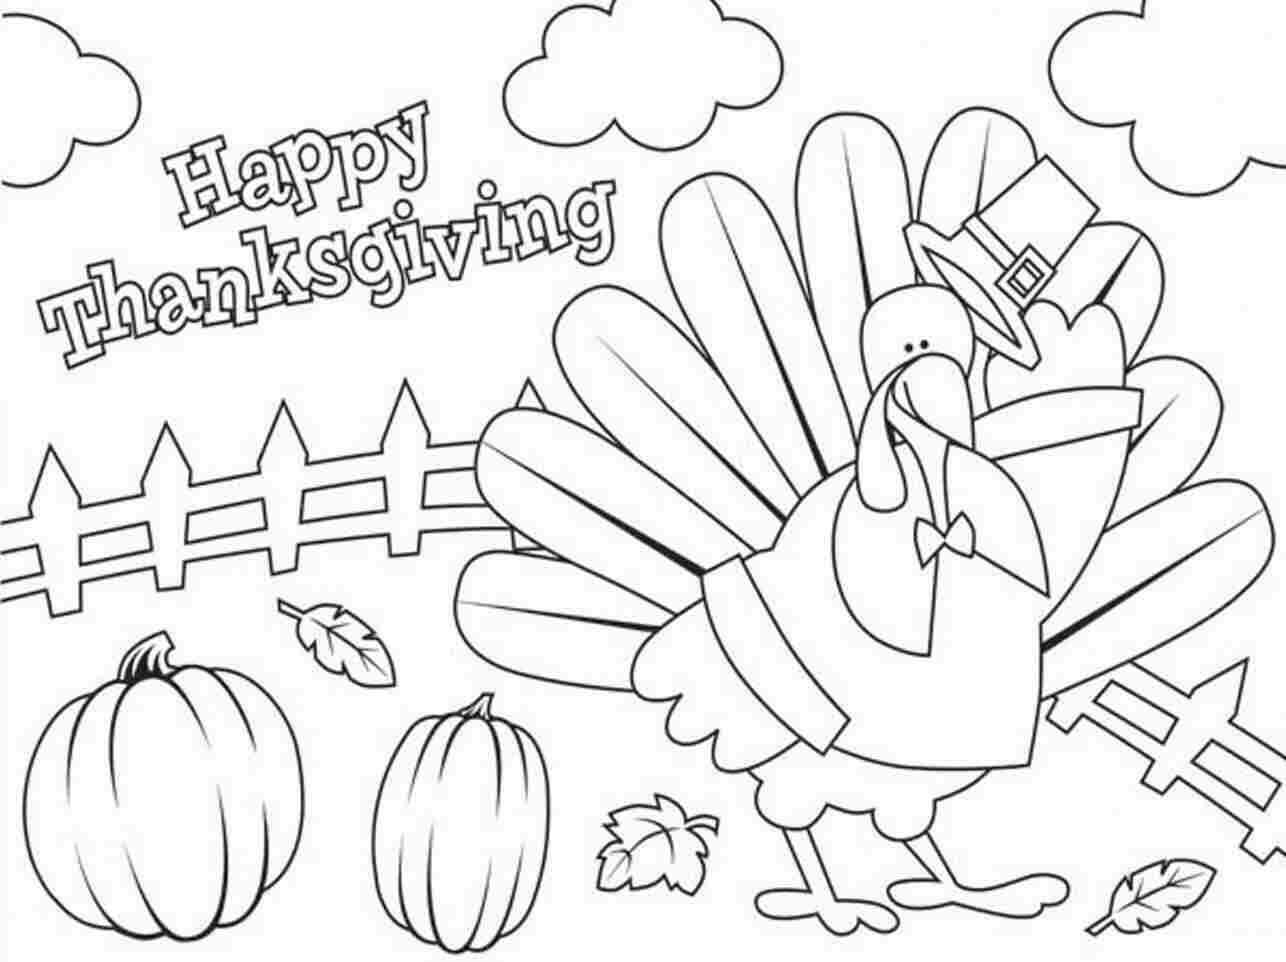 Thanksgiving 2018 Coloring Images Printable